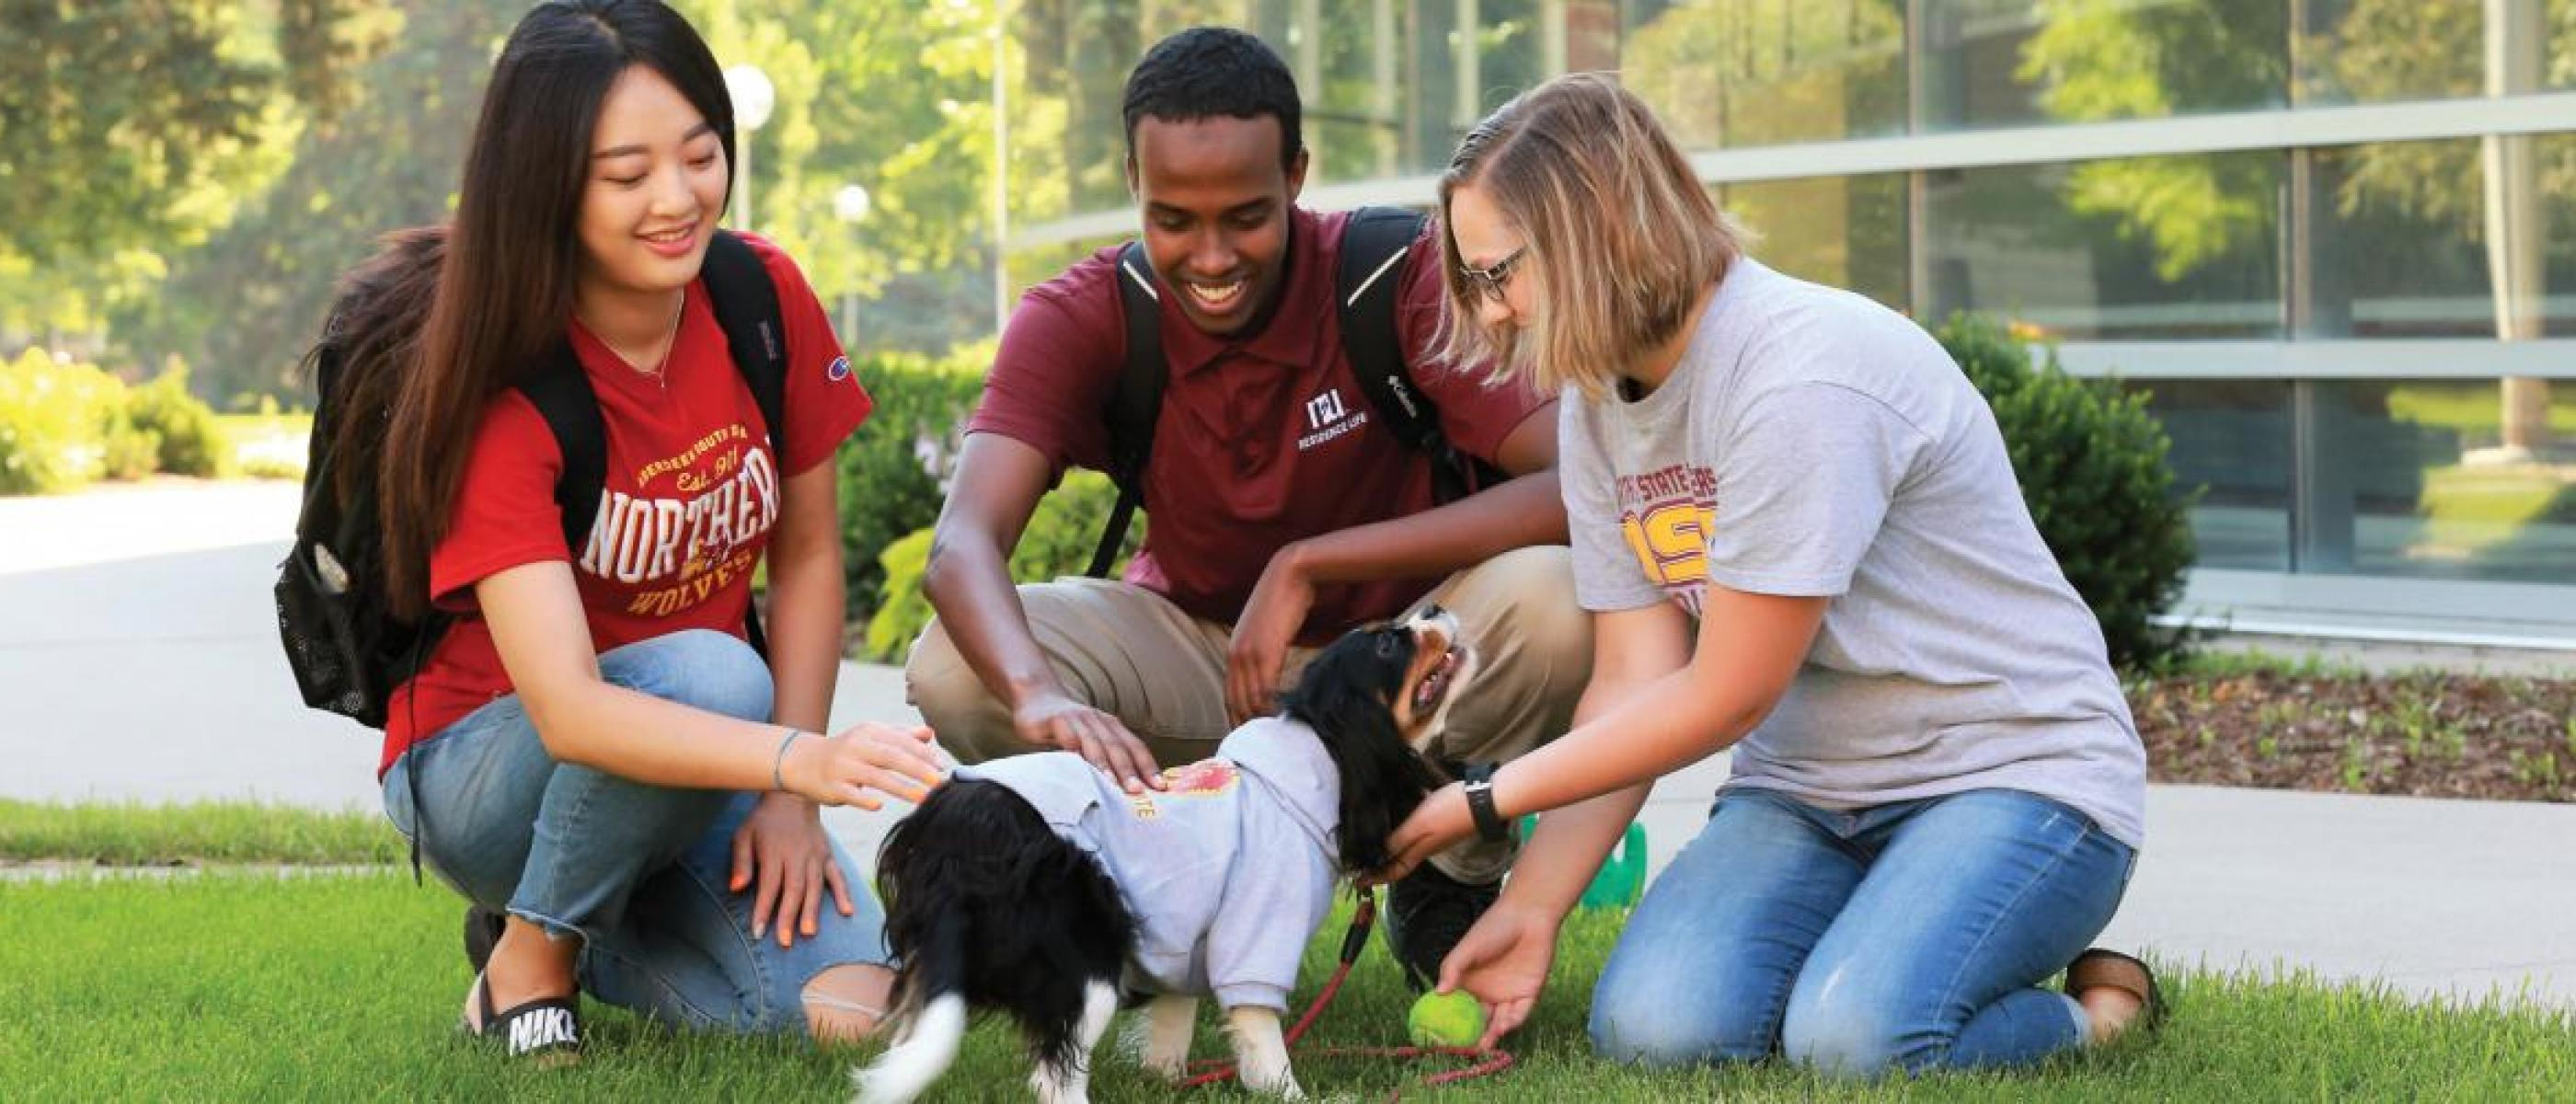 Students playing with a dog on the campus green